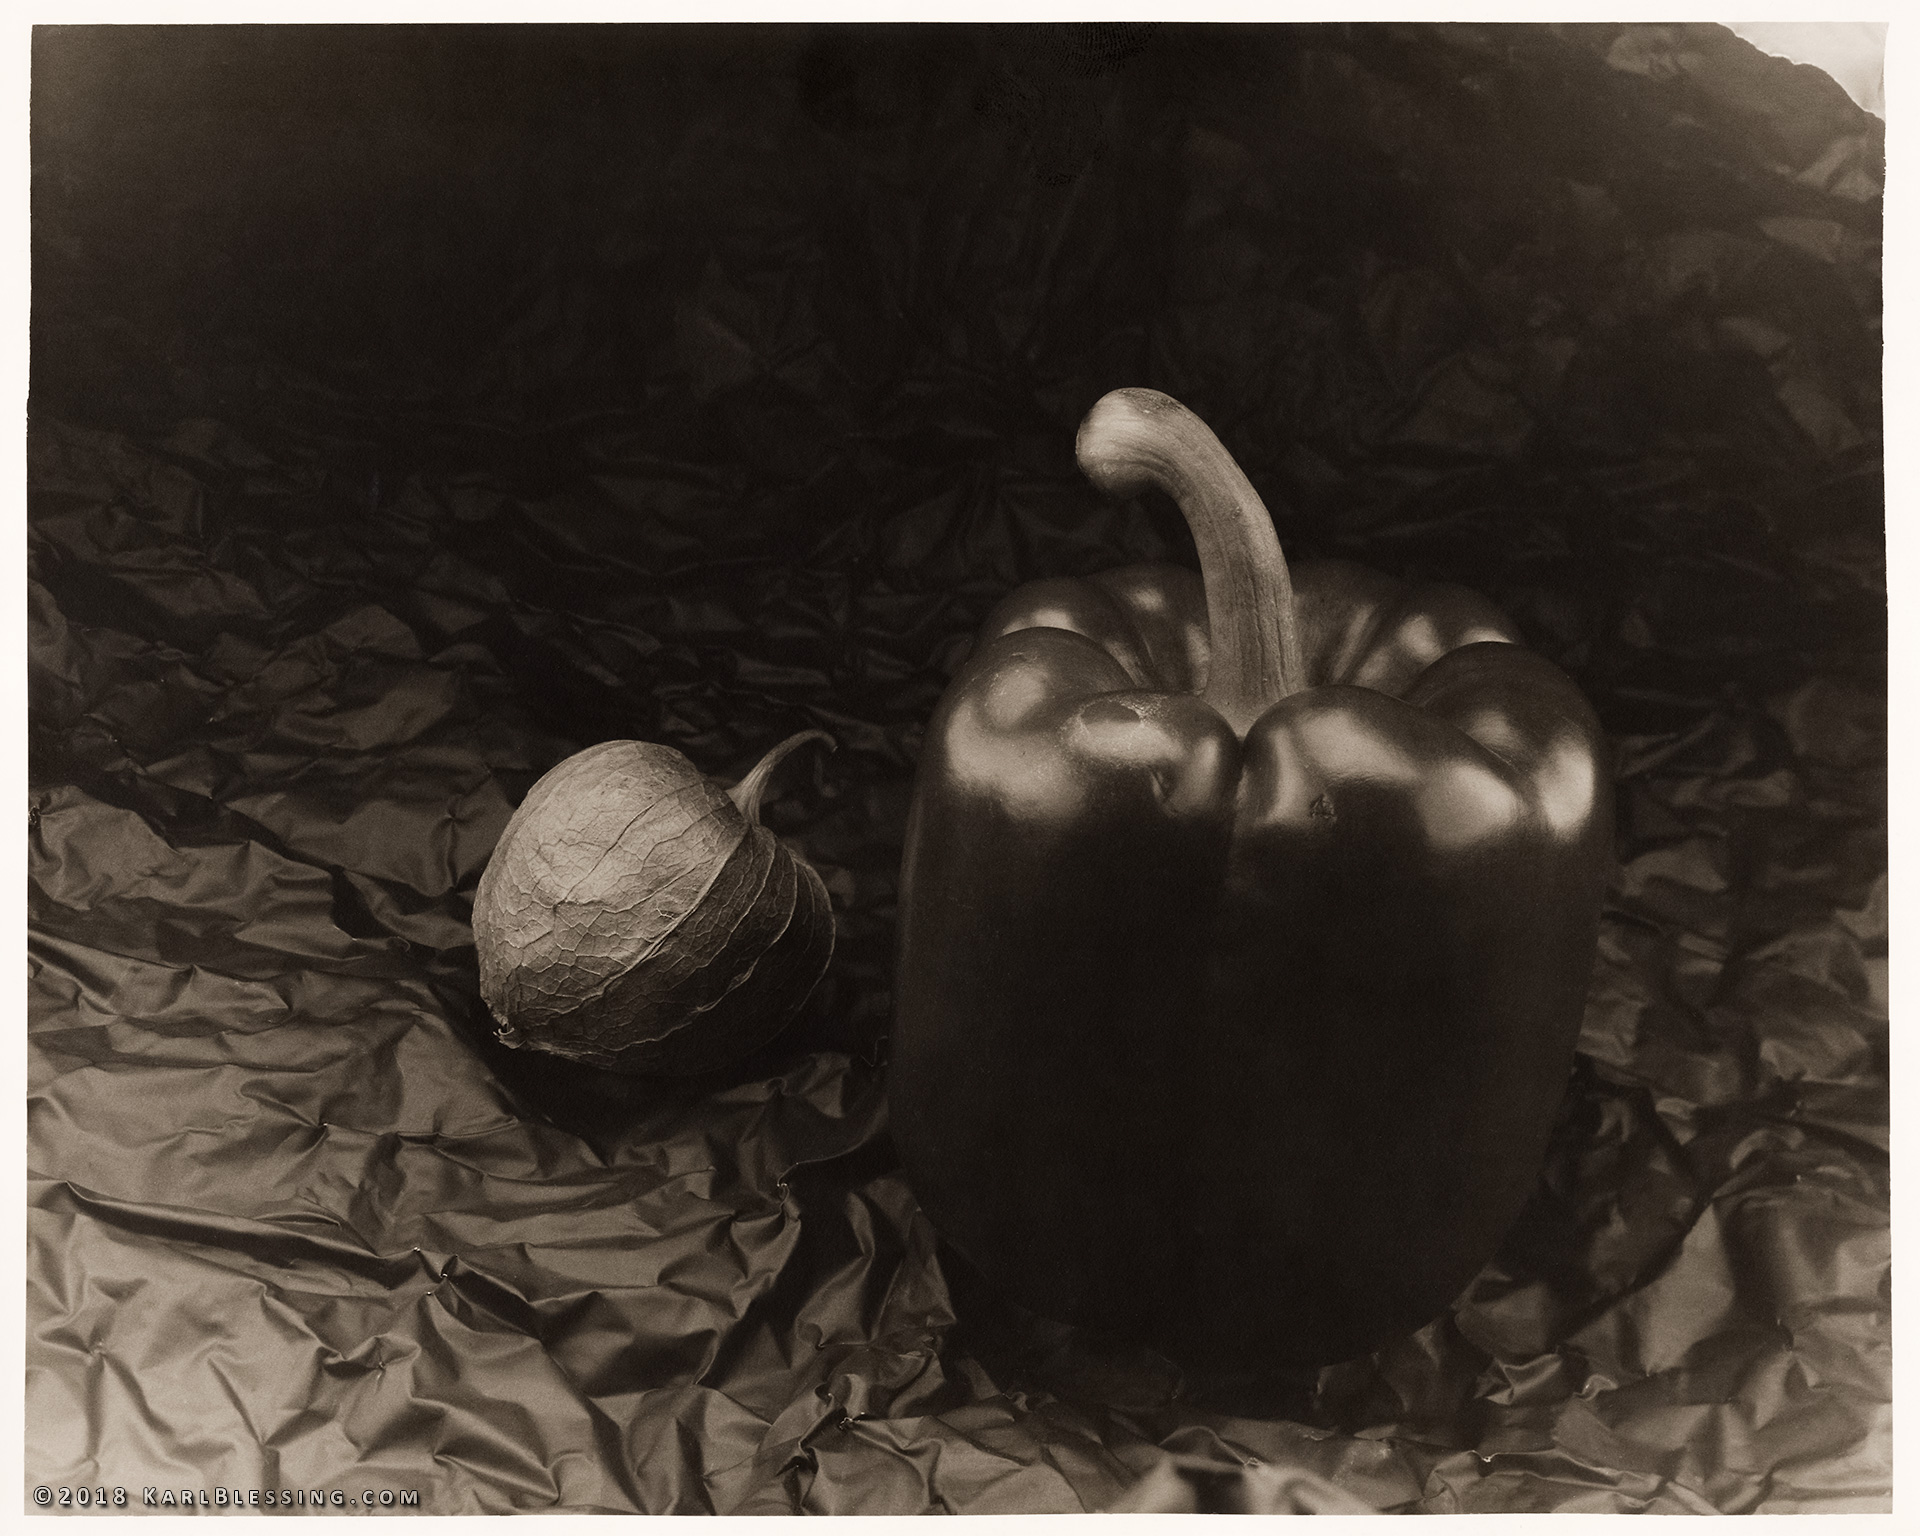 Tomatillo and Pepper (4x5 Print) by KBeezie